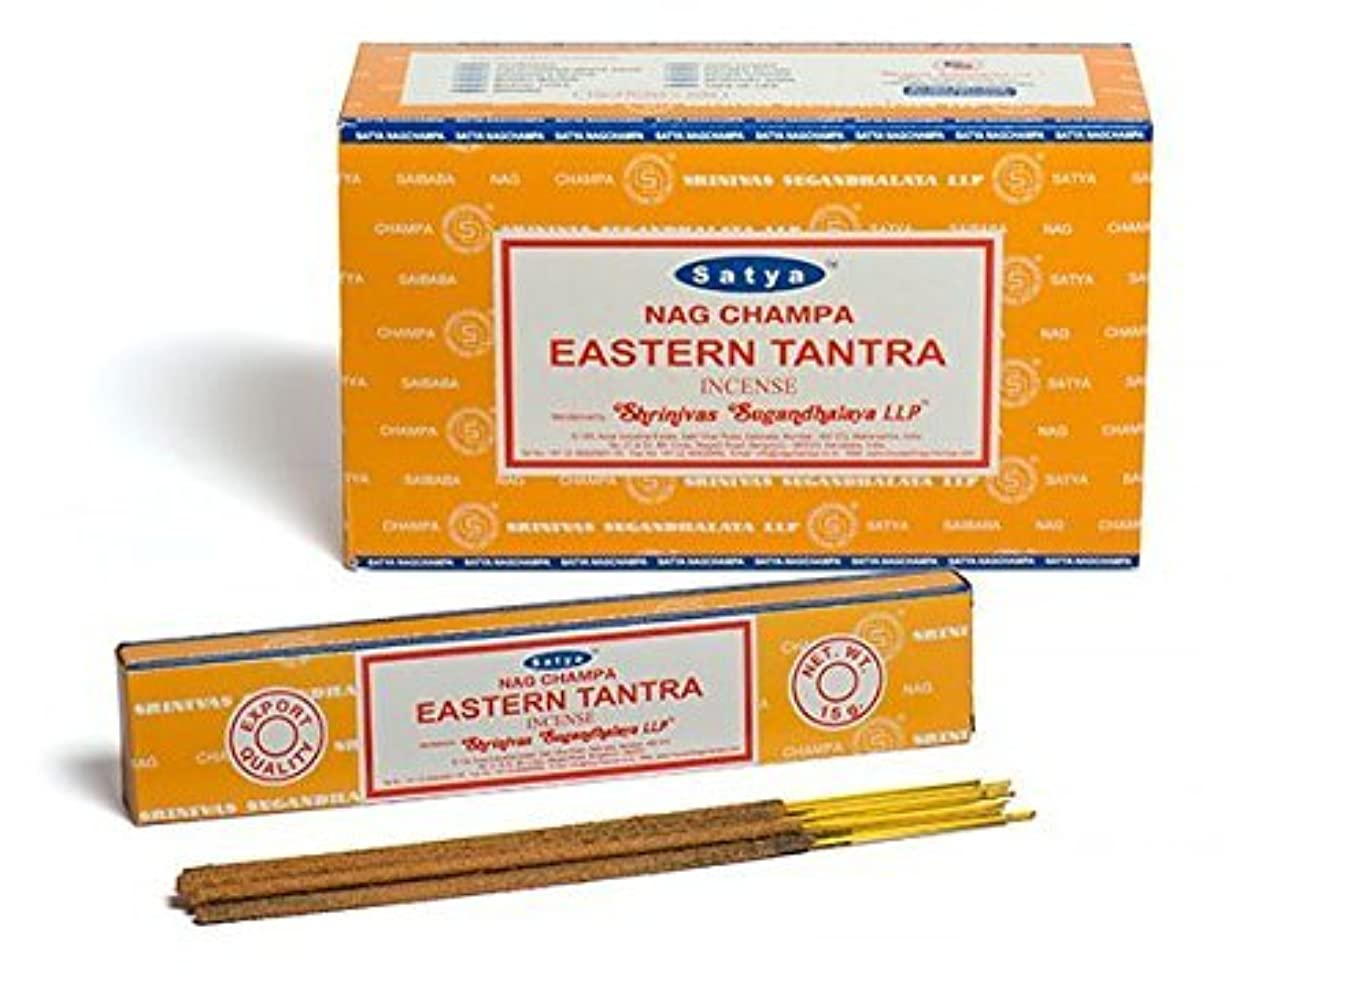 徴収道徳小数Buycrafty Satya Champa Eastern Tantra Incense Stick,180 Grams Box (15g x 12 Boxes)